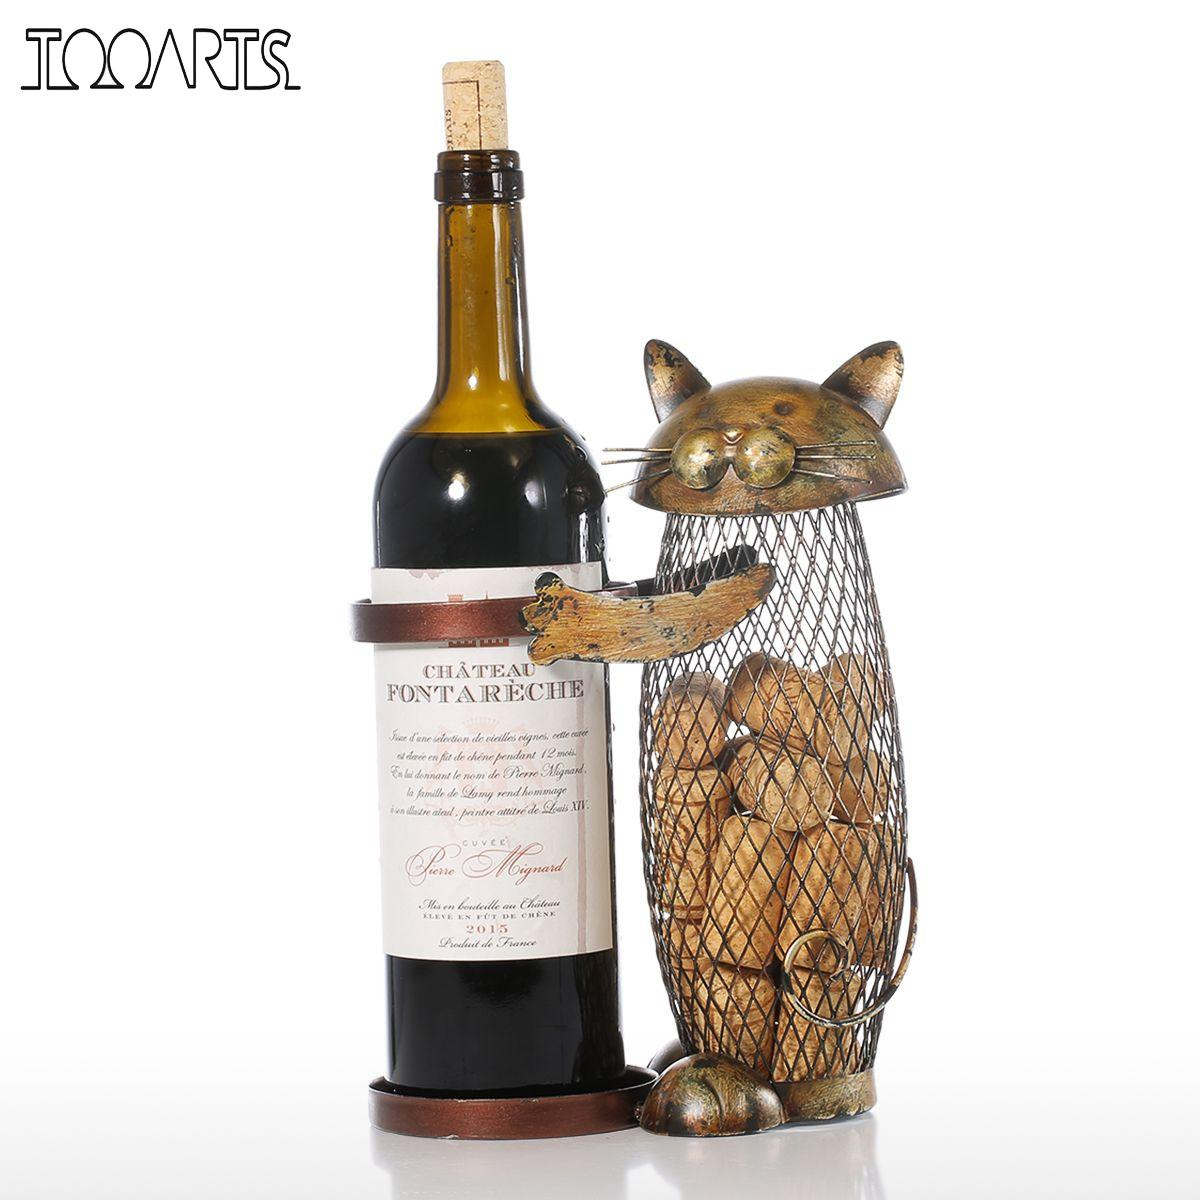 Tooarts Cat Red Wine Rack Cork Container Bottle Holder Kitchen Bar Display Metal Wine Craft Gift